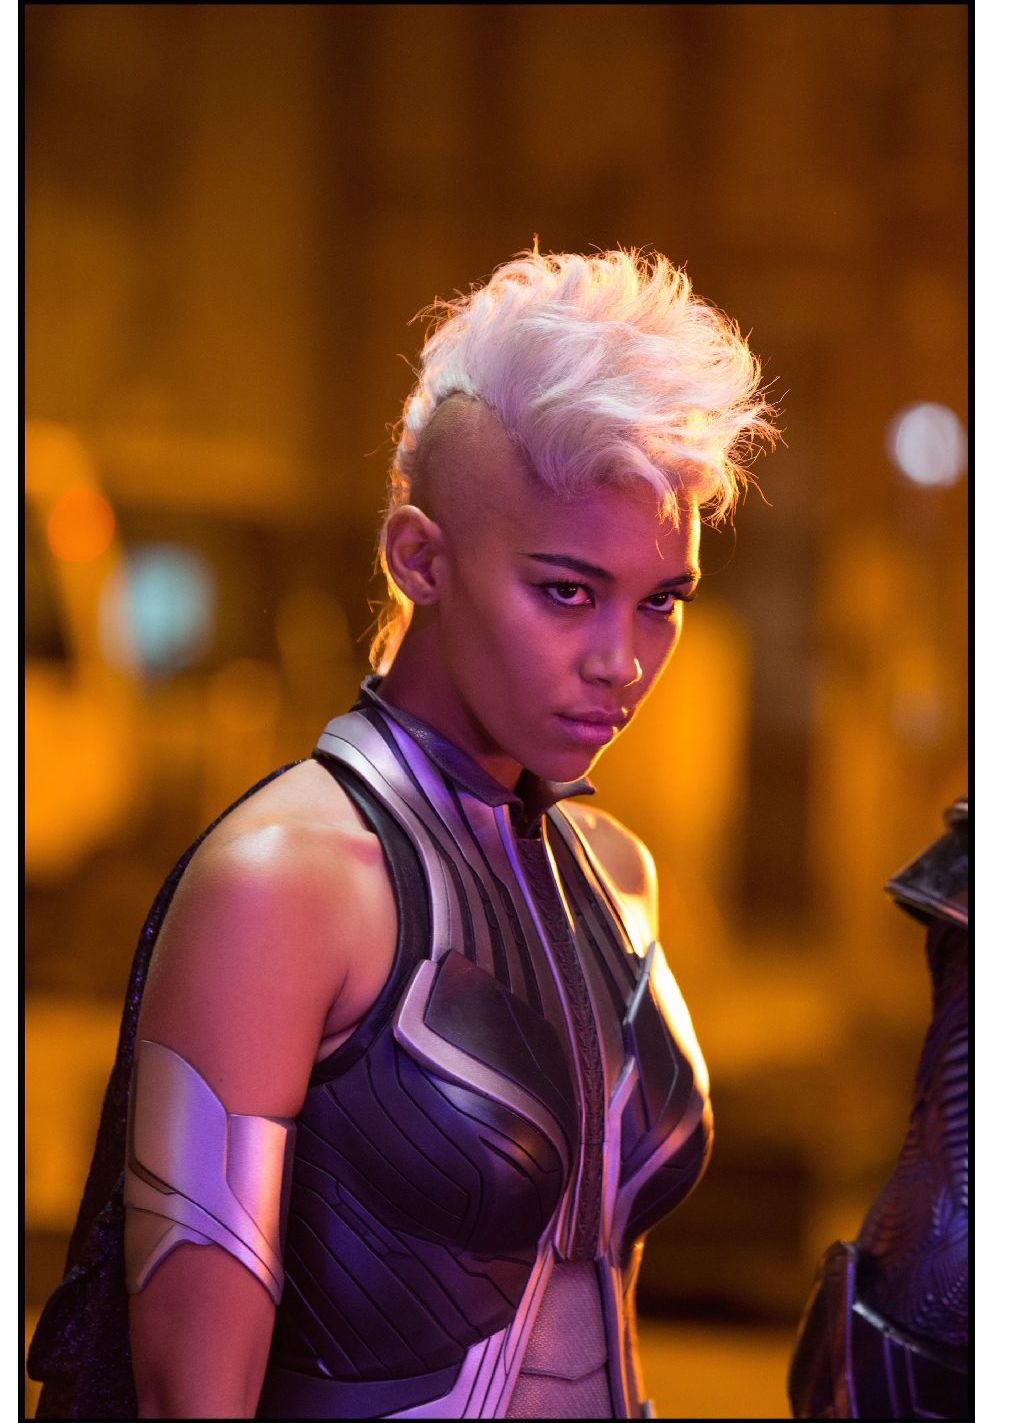 I'm most excited for Storm in the new X-Men film. She sexy ...